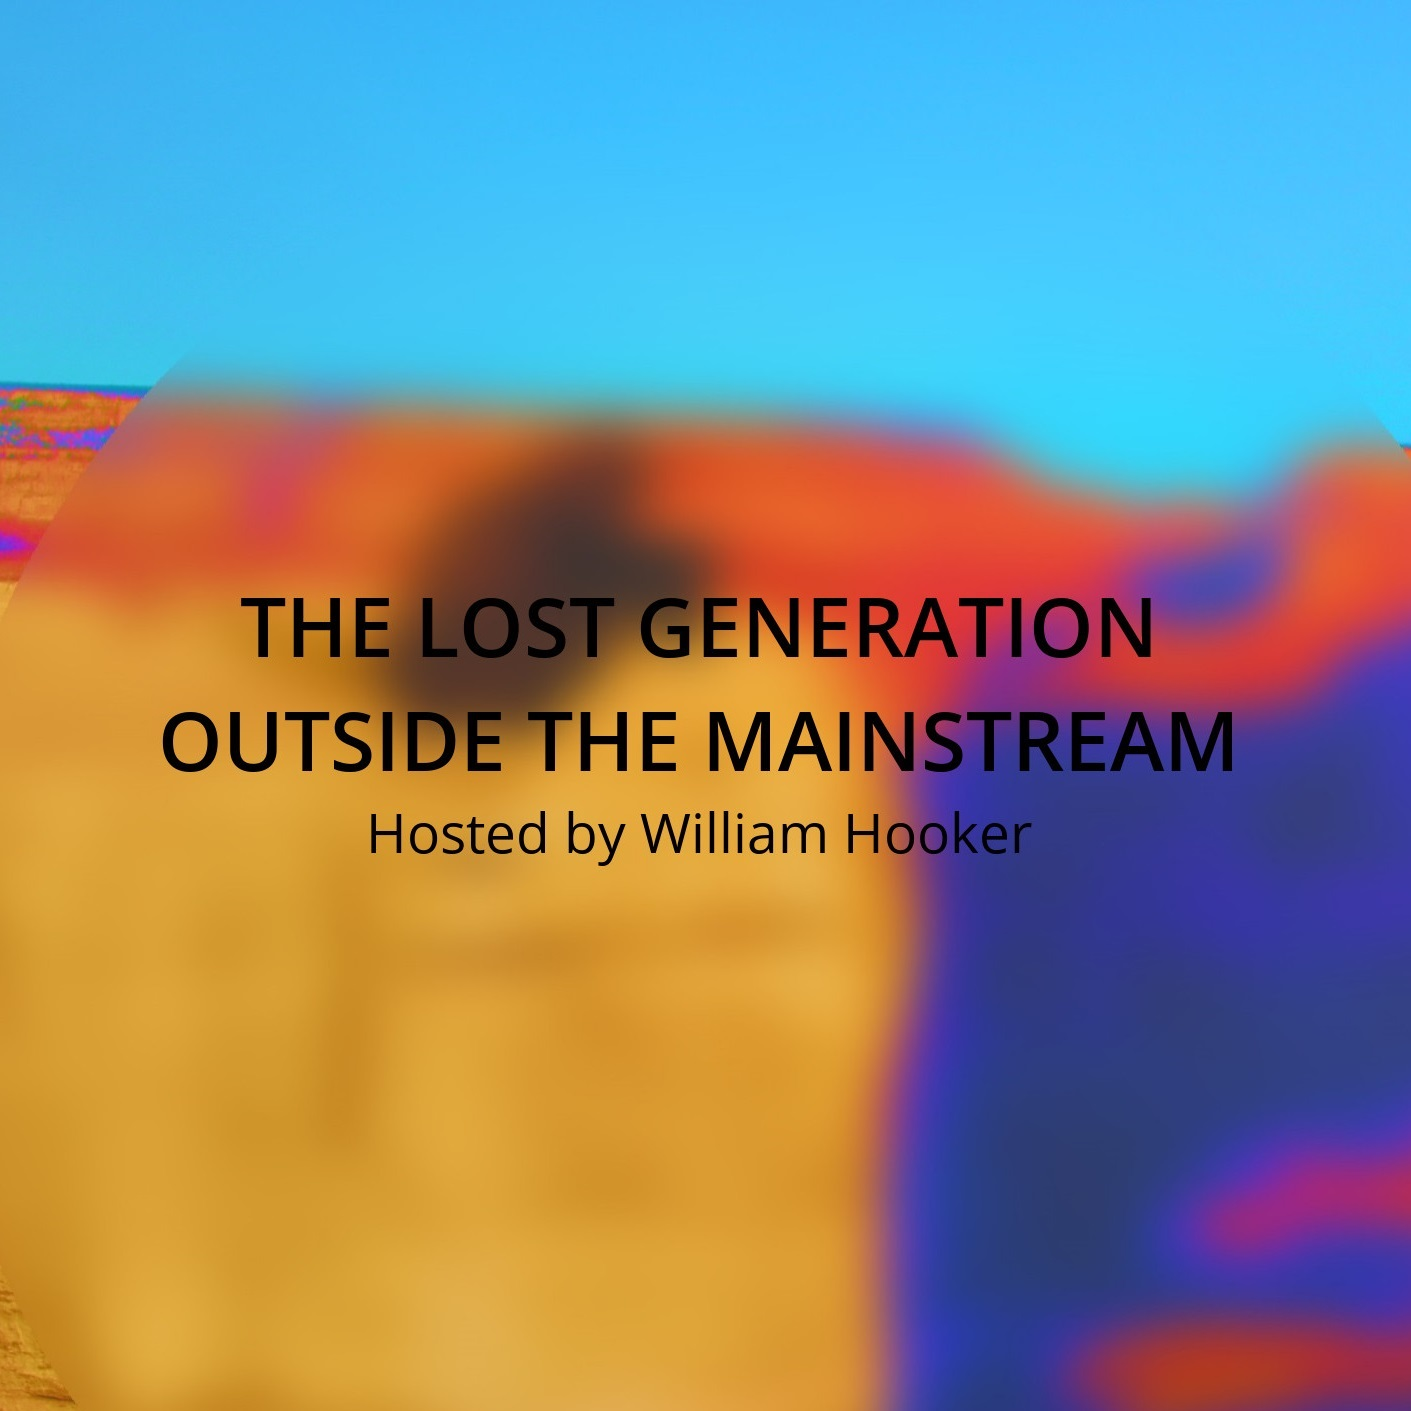 The Lost Generation - Outside the Mainstream